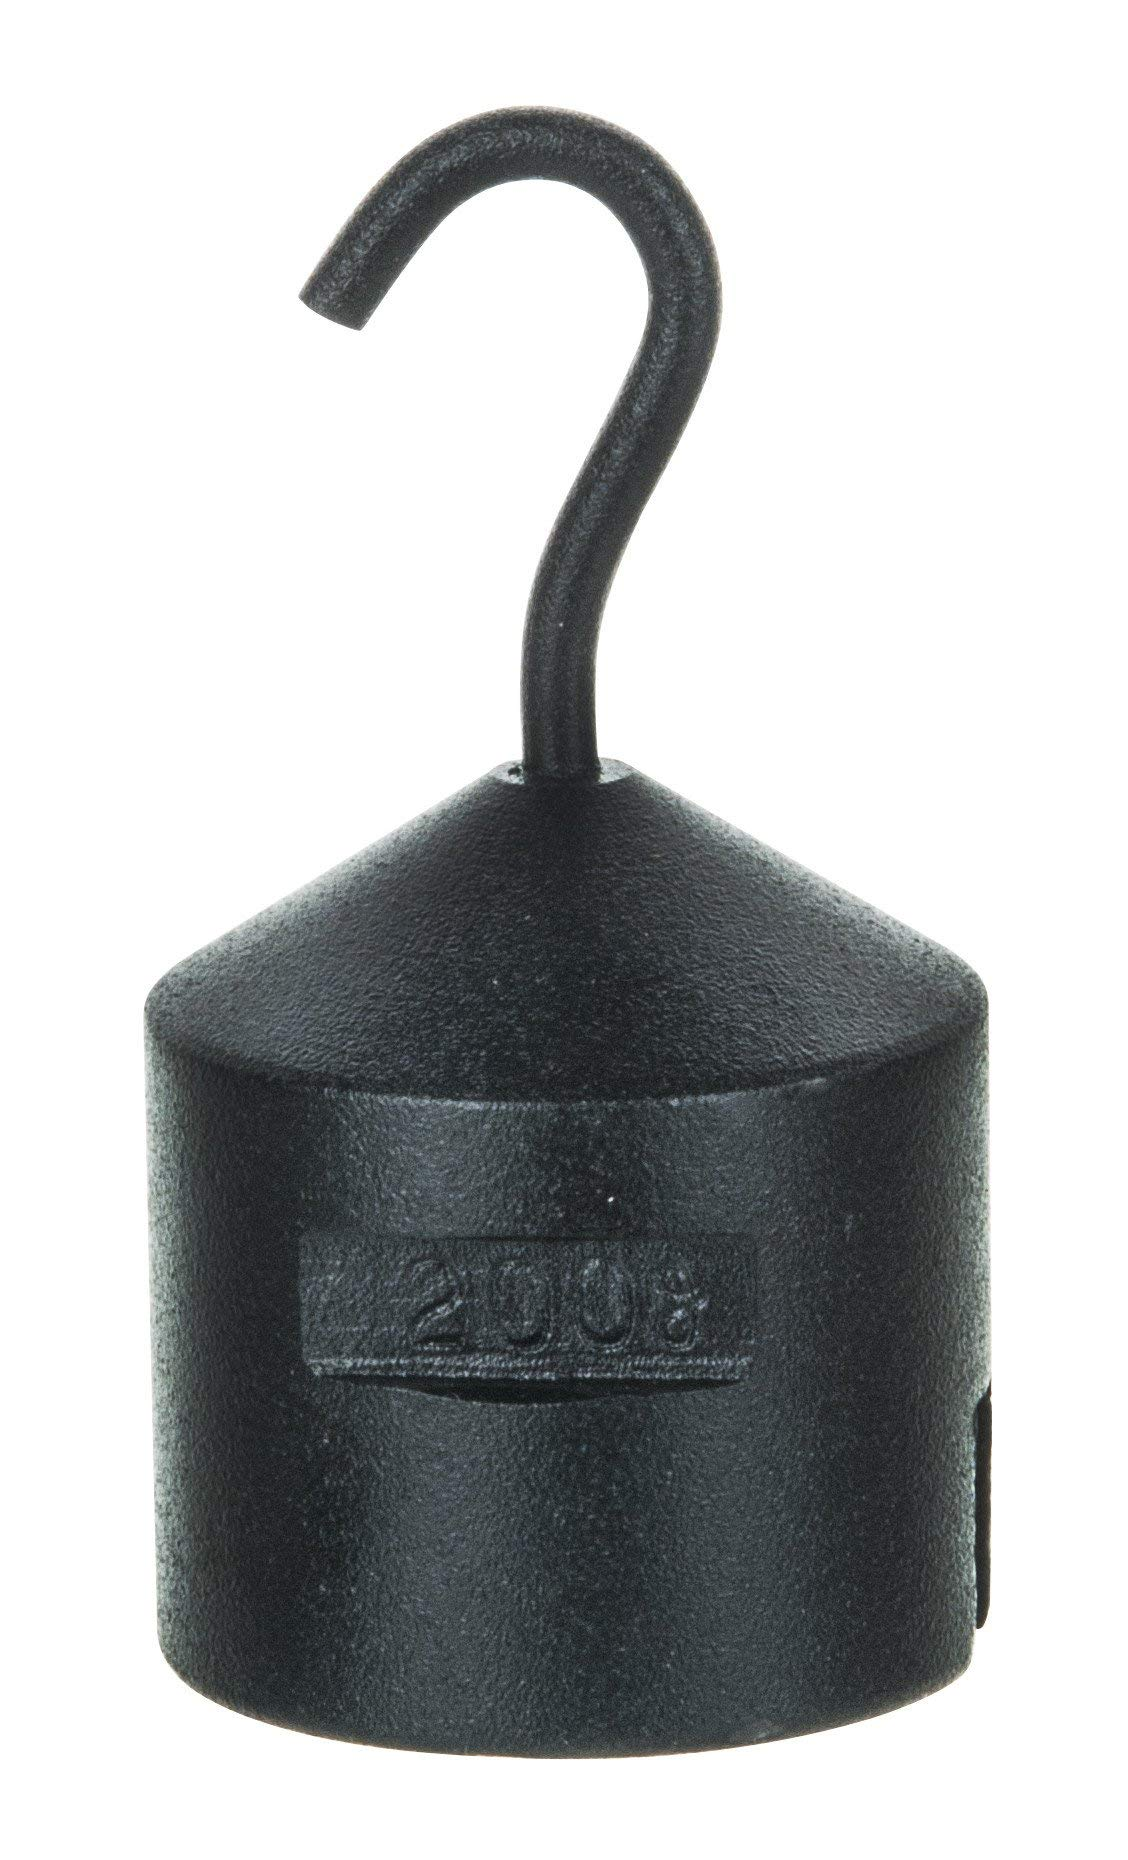 Hooked Iron Weight, 200g - with Bottom Slot - Cast Iron - Eisco Labs by EISCO